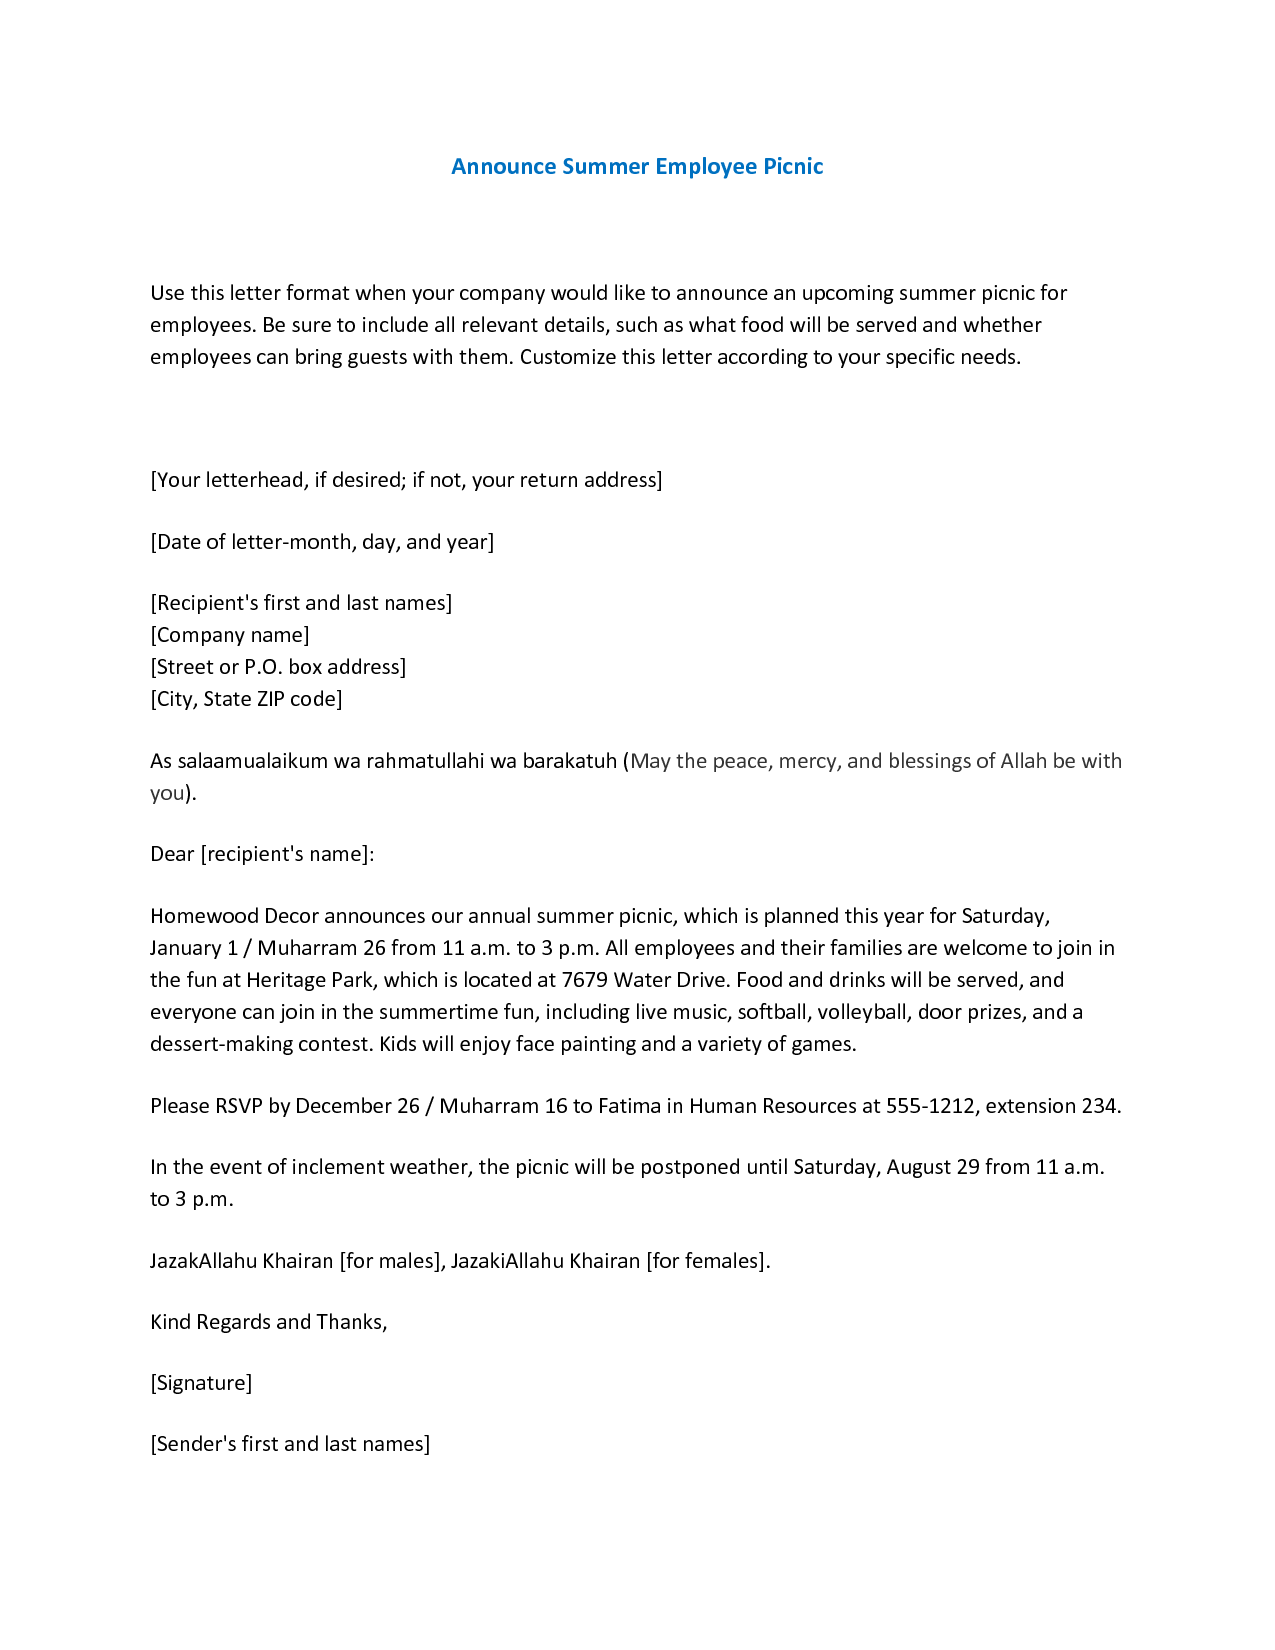 Announce summer employee picnic use this letter format when your announce summer employee picnic use this letter format when your company would like to announce an upcoming summer picnic for employees spiritdancerdesigns Choice Image